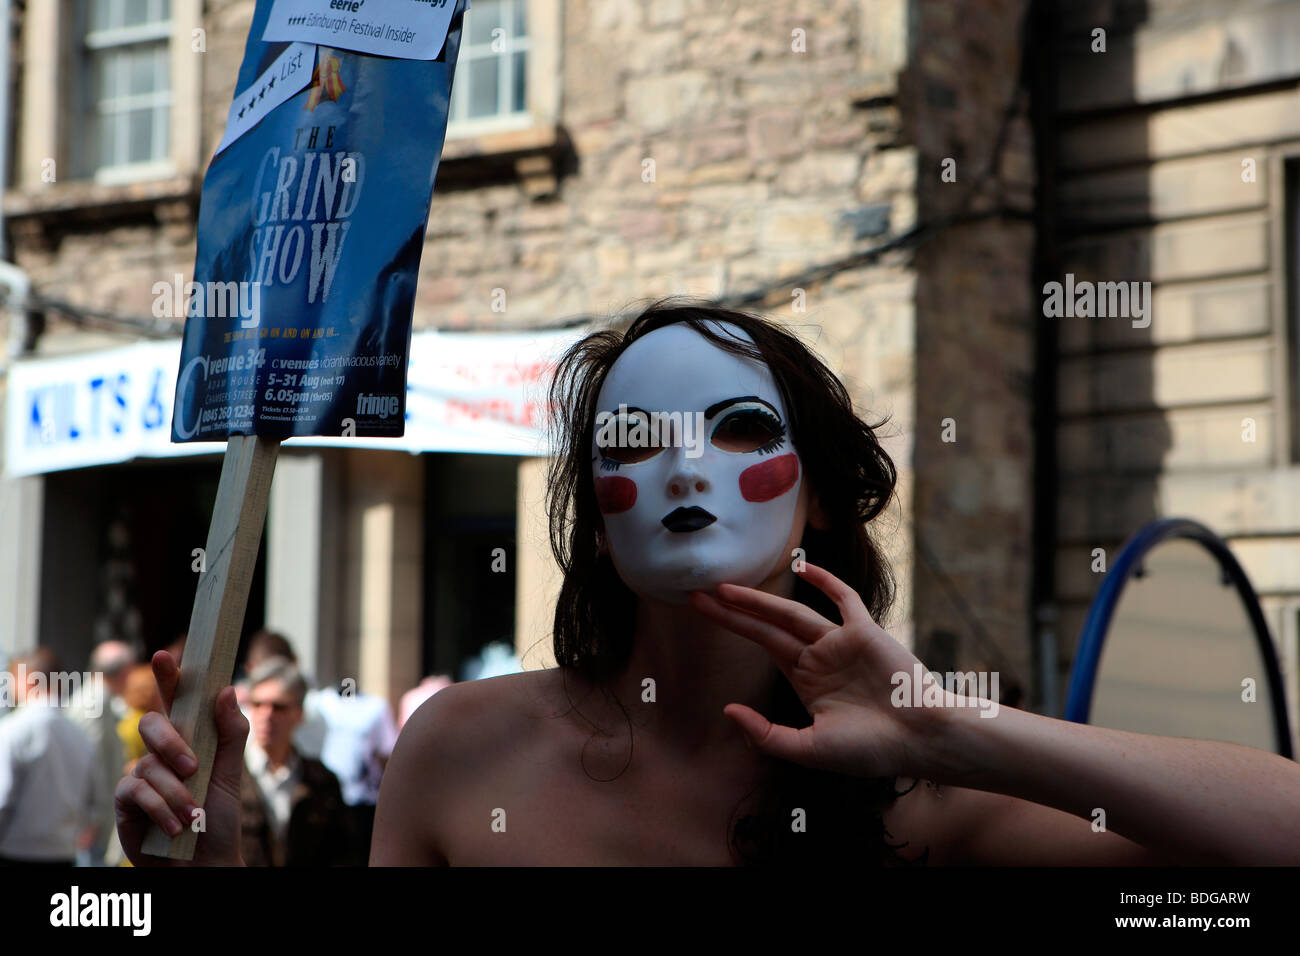 Girl with a white mask on promotes The Grind Show at the Edinburgh Fringe Festival 2009 - Stock Image